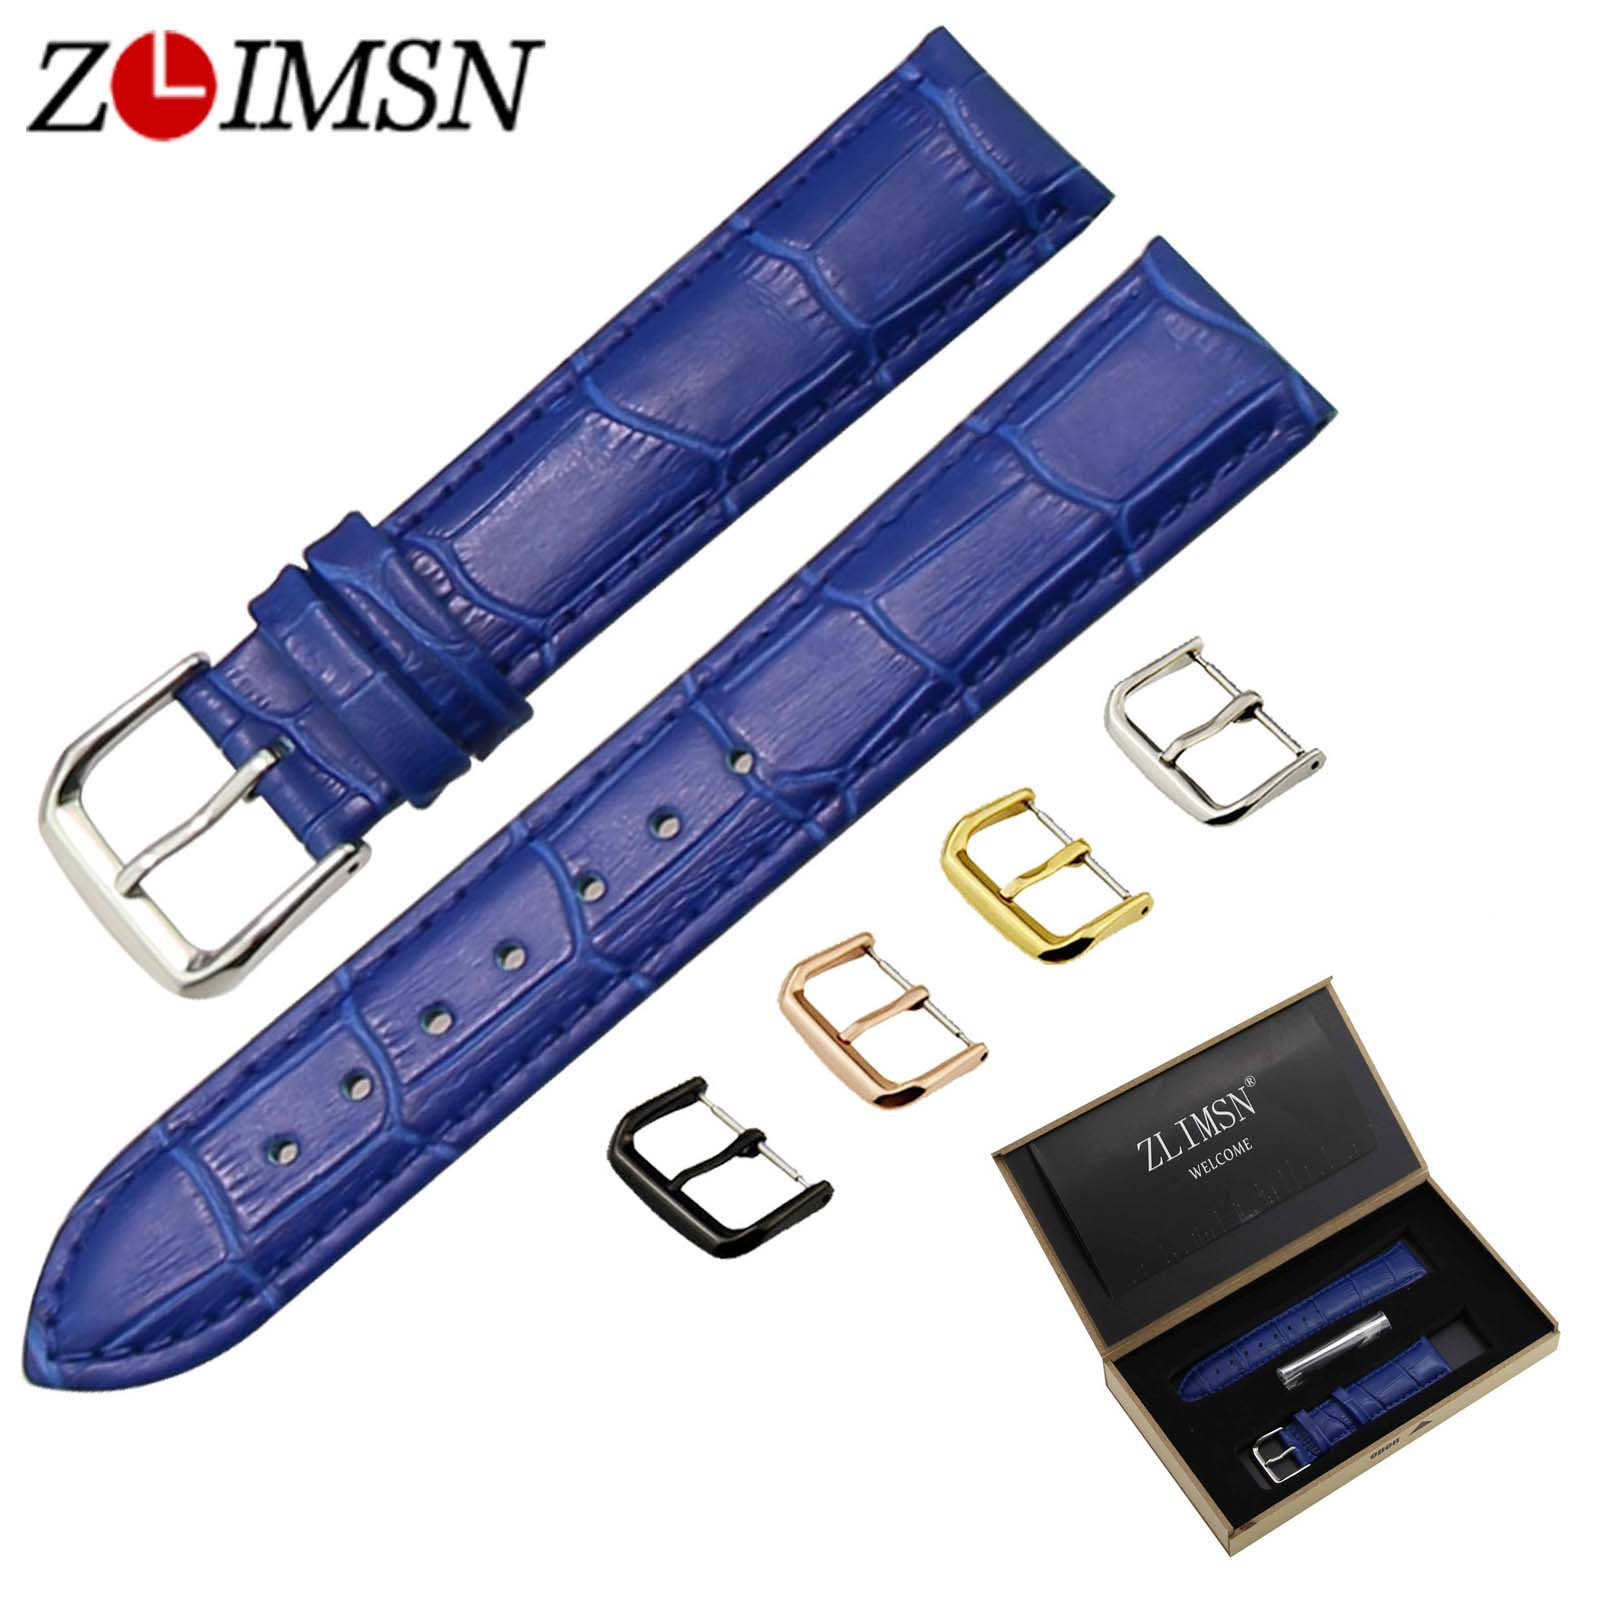 ZLIMSN Italian Genuine Leather Watch Band Blue Crocodile & Grain Strap Gold Black Silver Rose Gold Pin Buckle 12 14 16 18 20mm new fashion replace watch band 22mm 24mm mens womens dark blue 100% genuine crocodile grain leather watch strap band bracelets